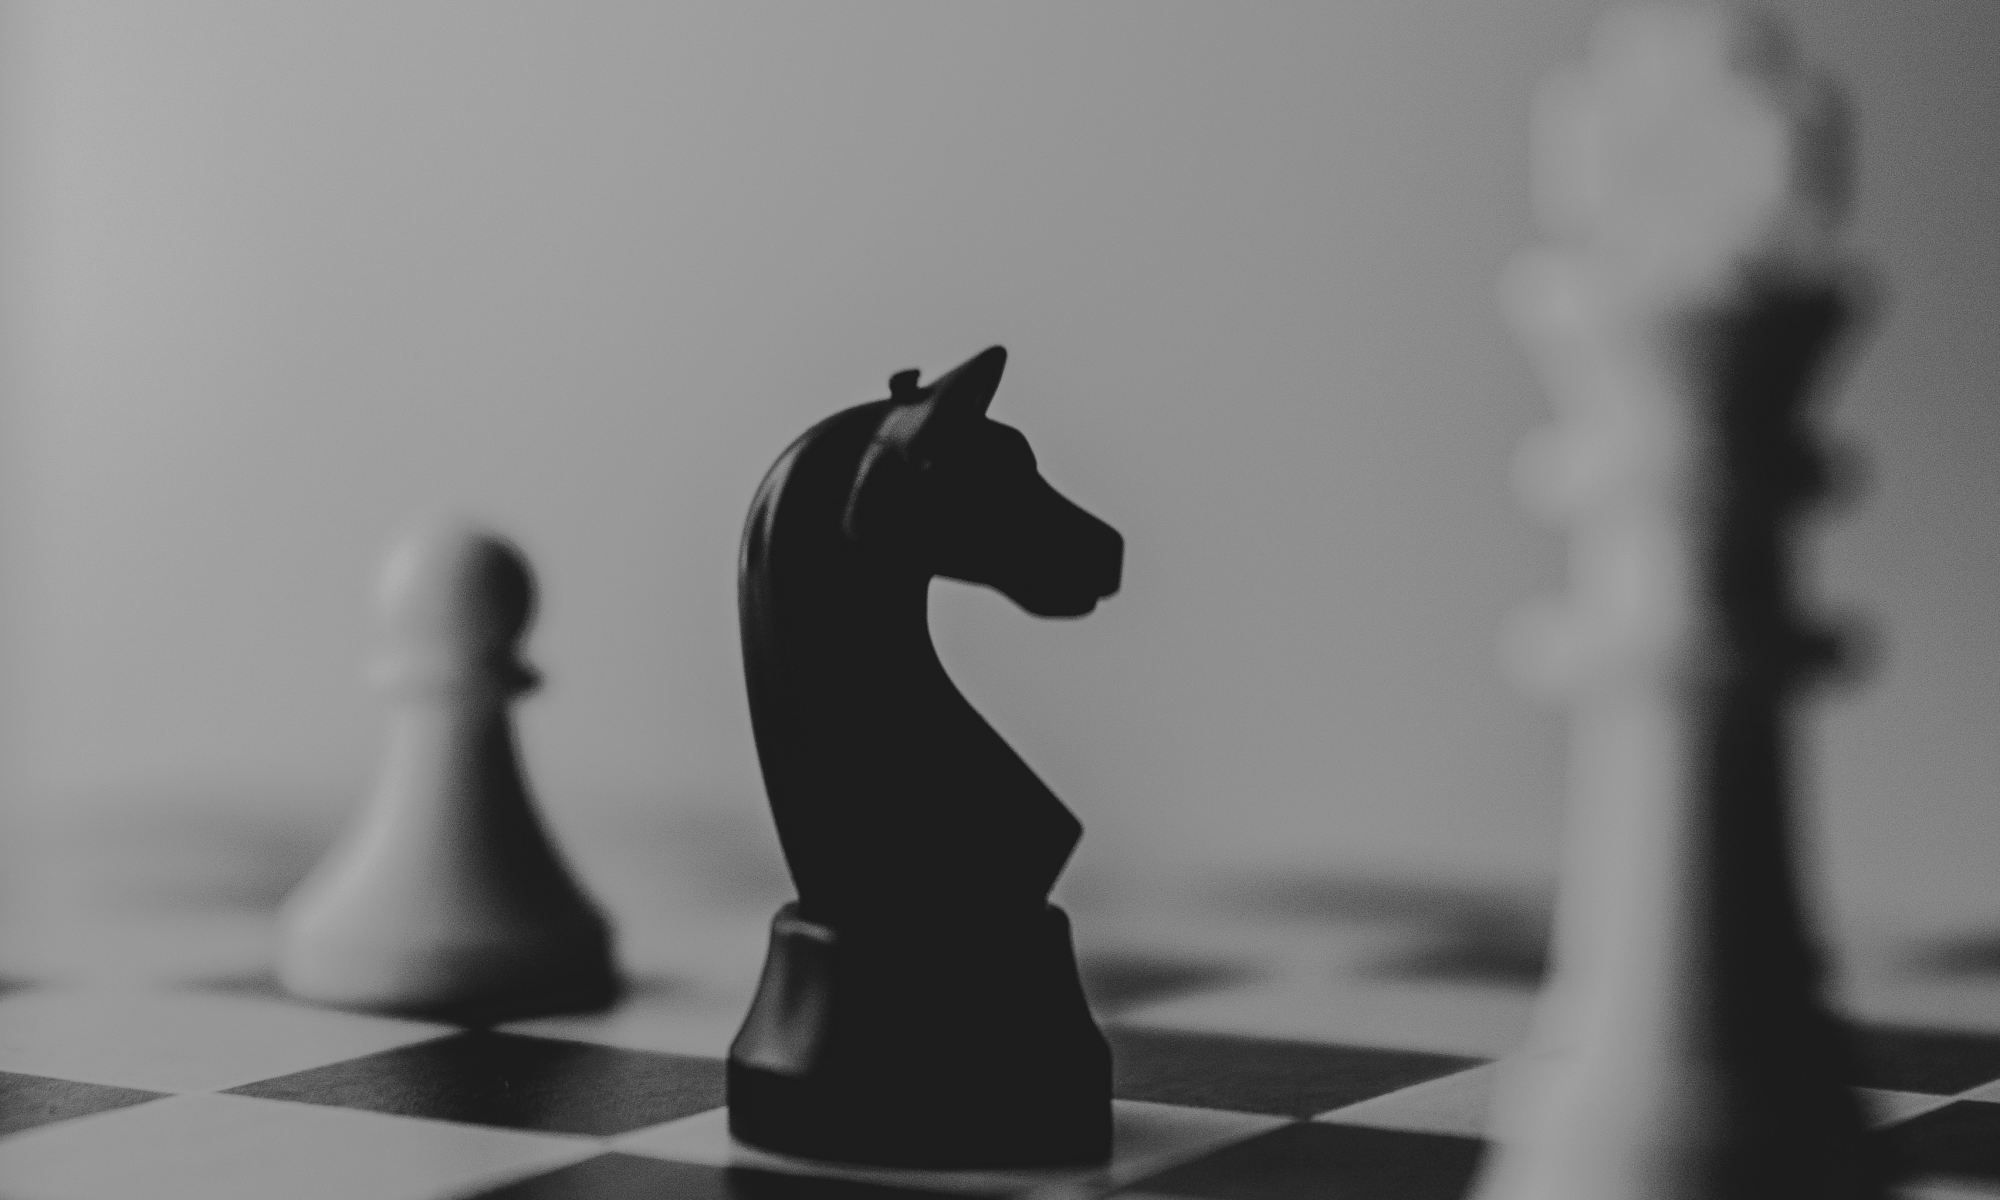 Black horse chess piece cornered by white king and pawn